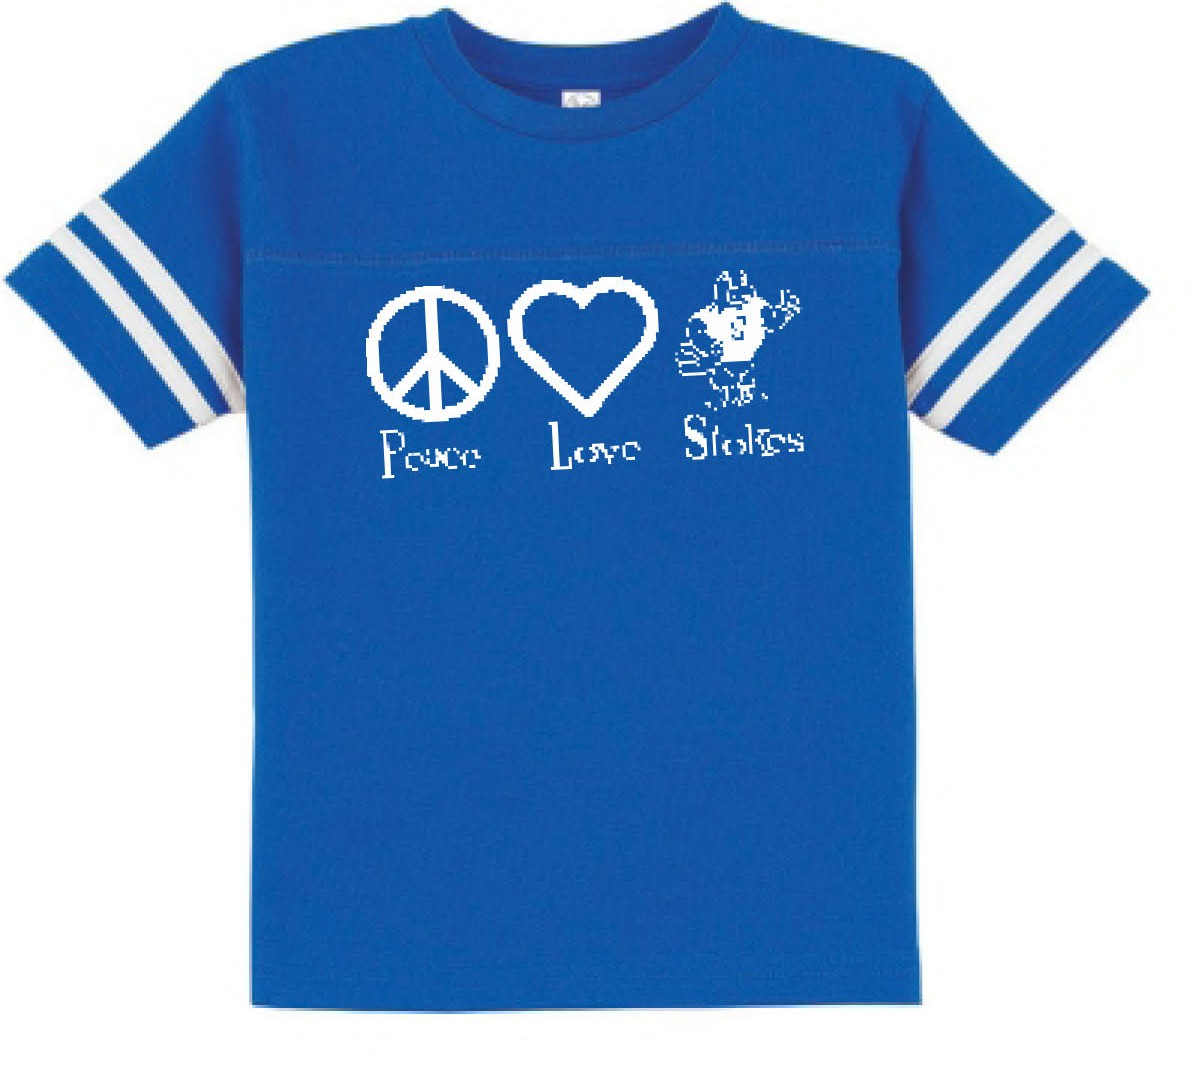 Stokes Peace & Love Two Stripe Jerseys